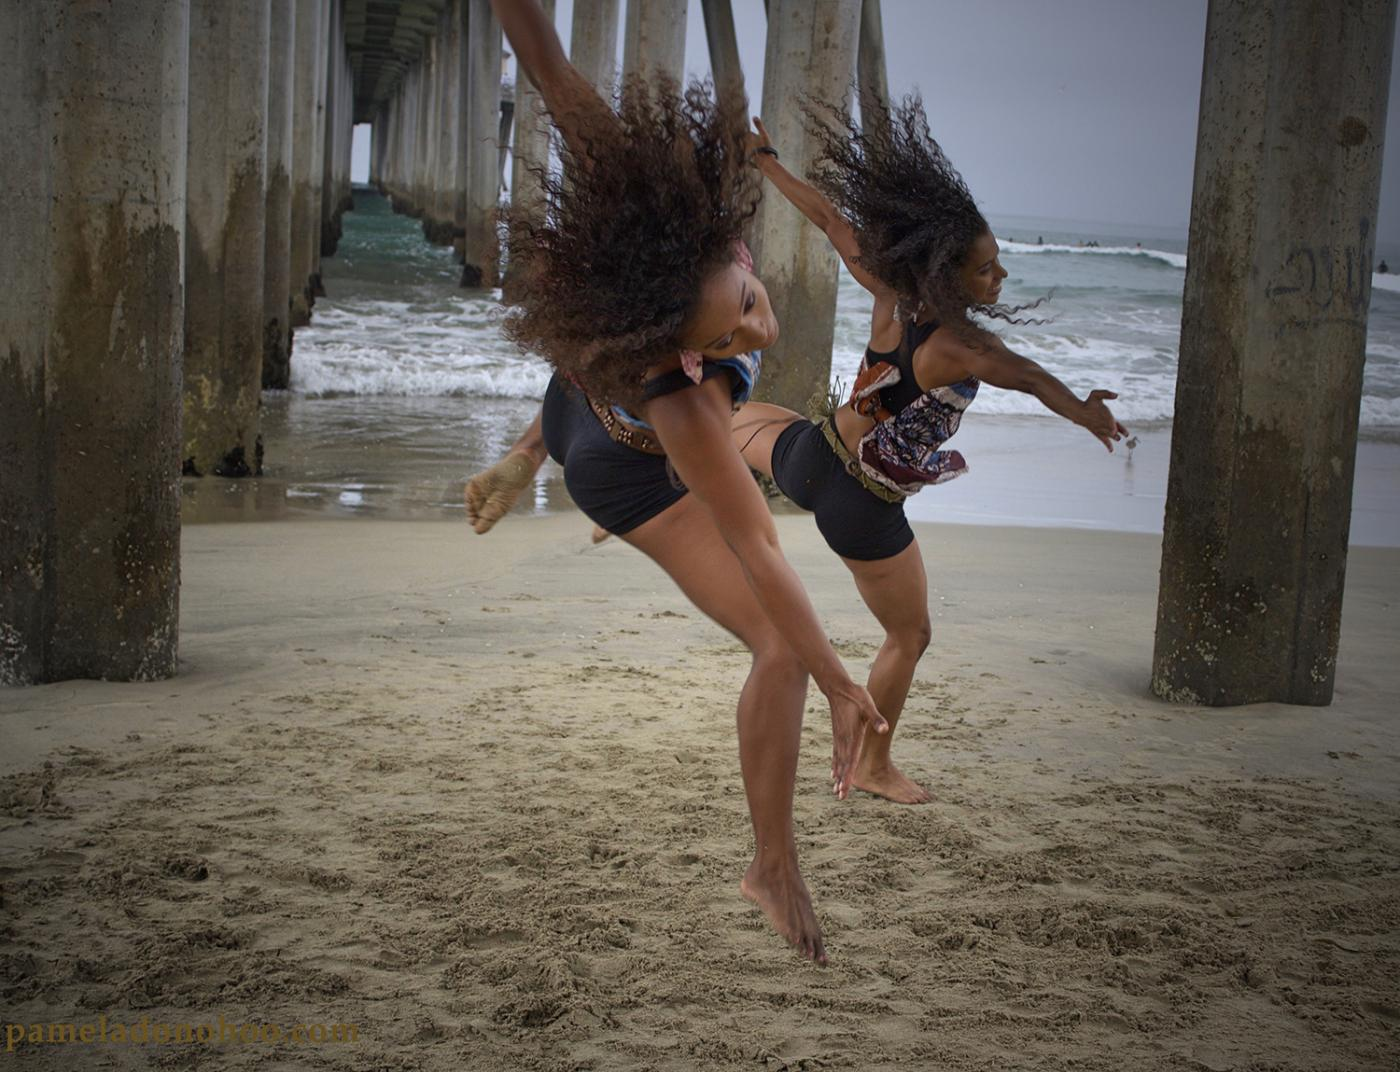 Under a dock, two blacks girls dance in the sand.